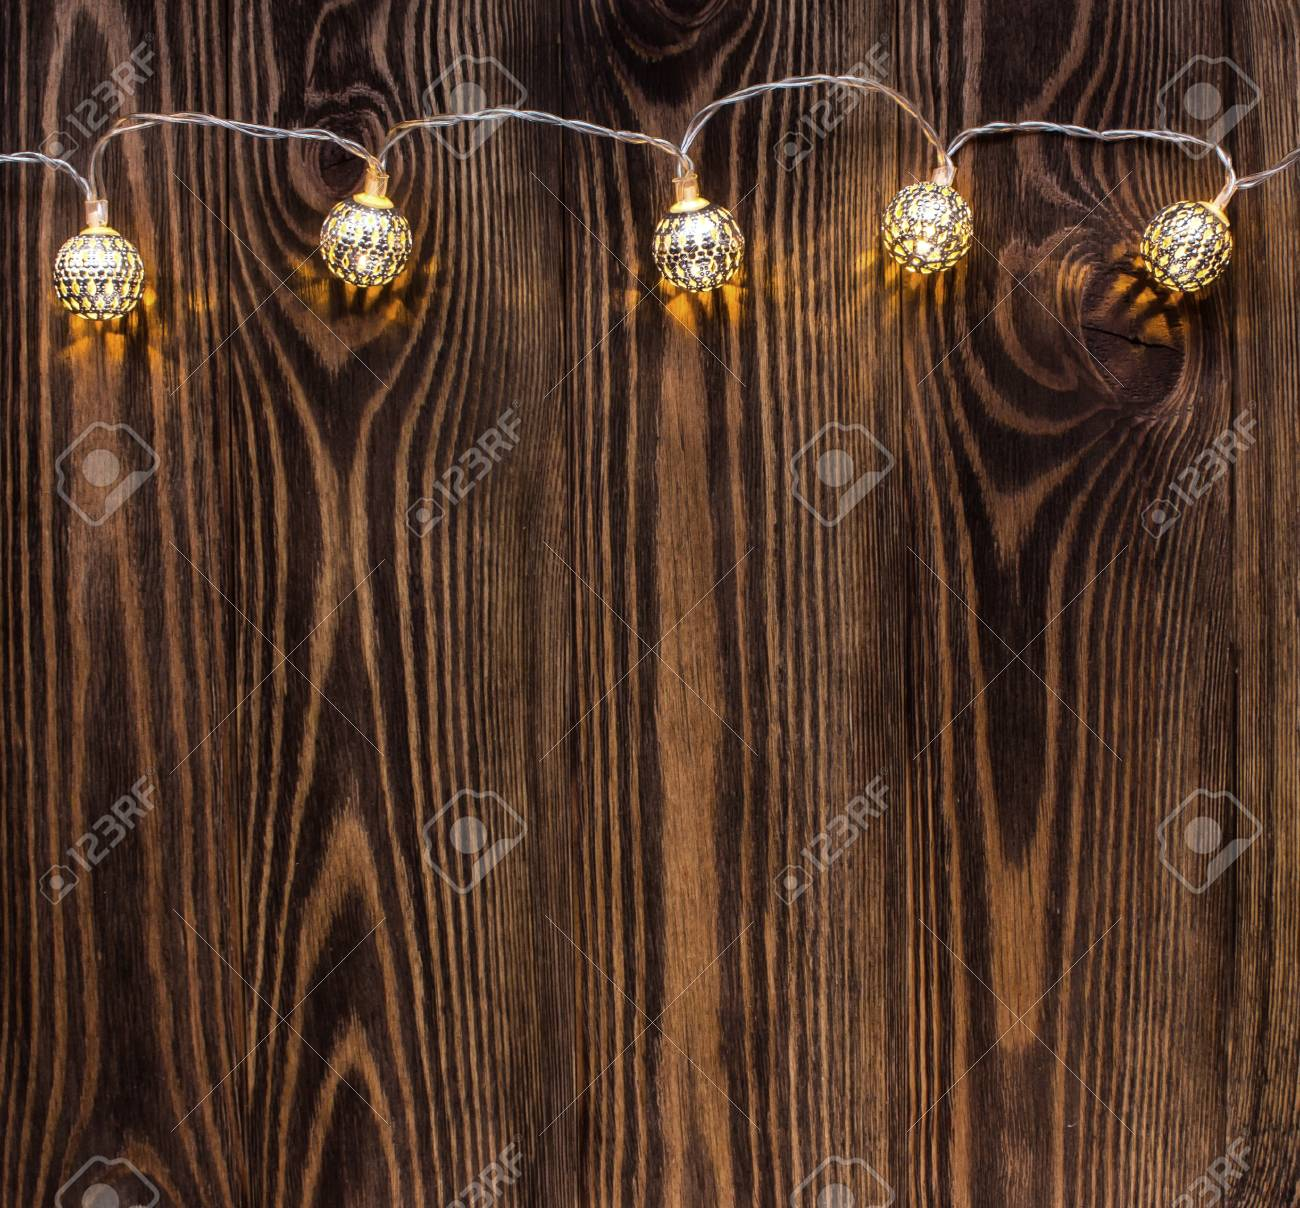 Christmas Background With String Lights Vintage Garland On Wooden Planks Stock Photo